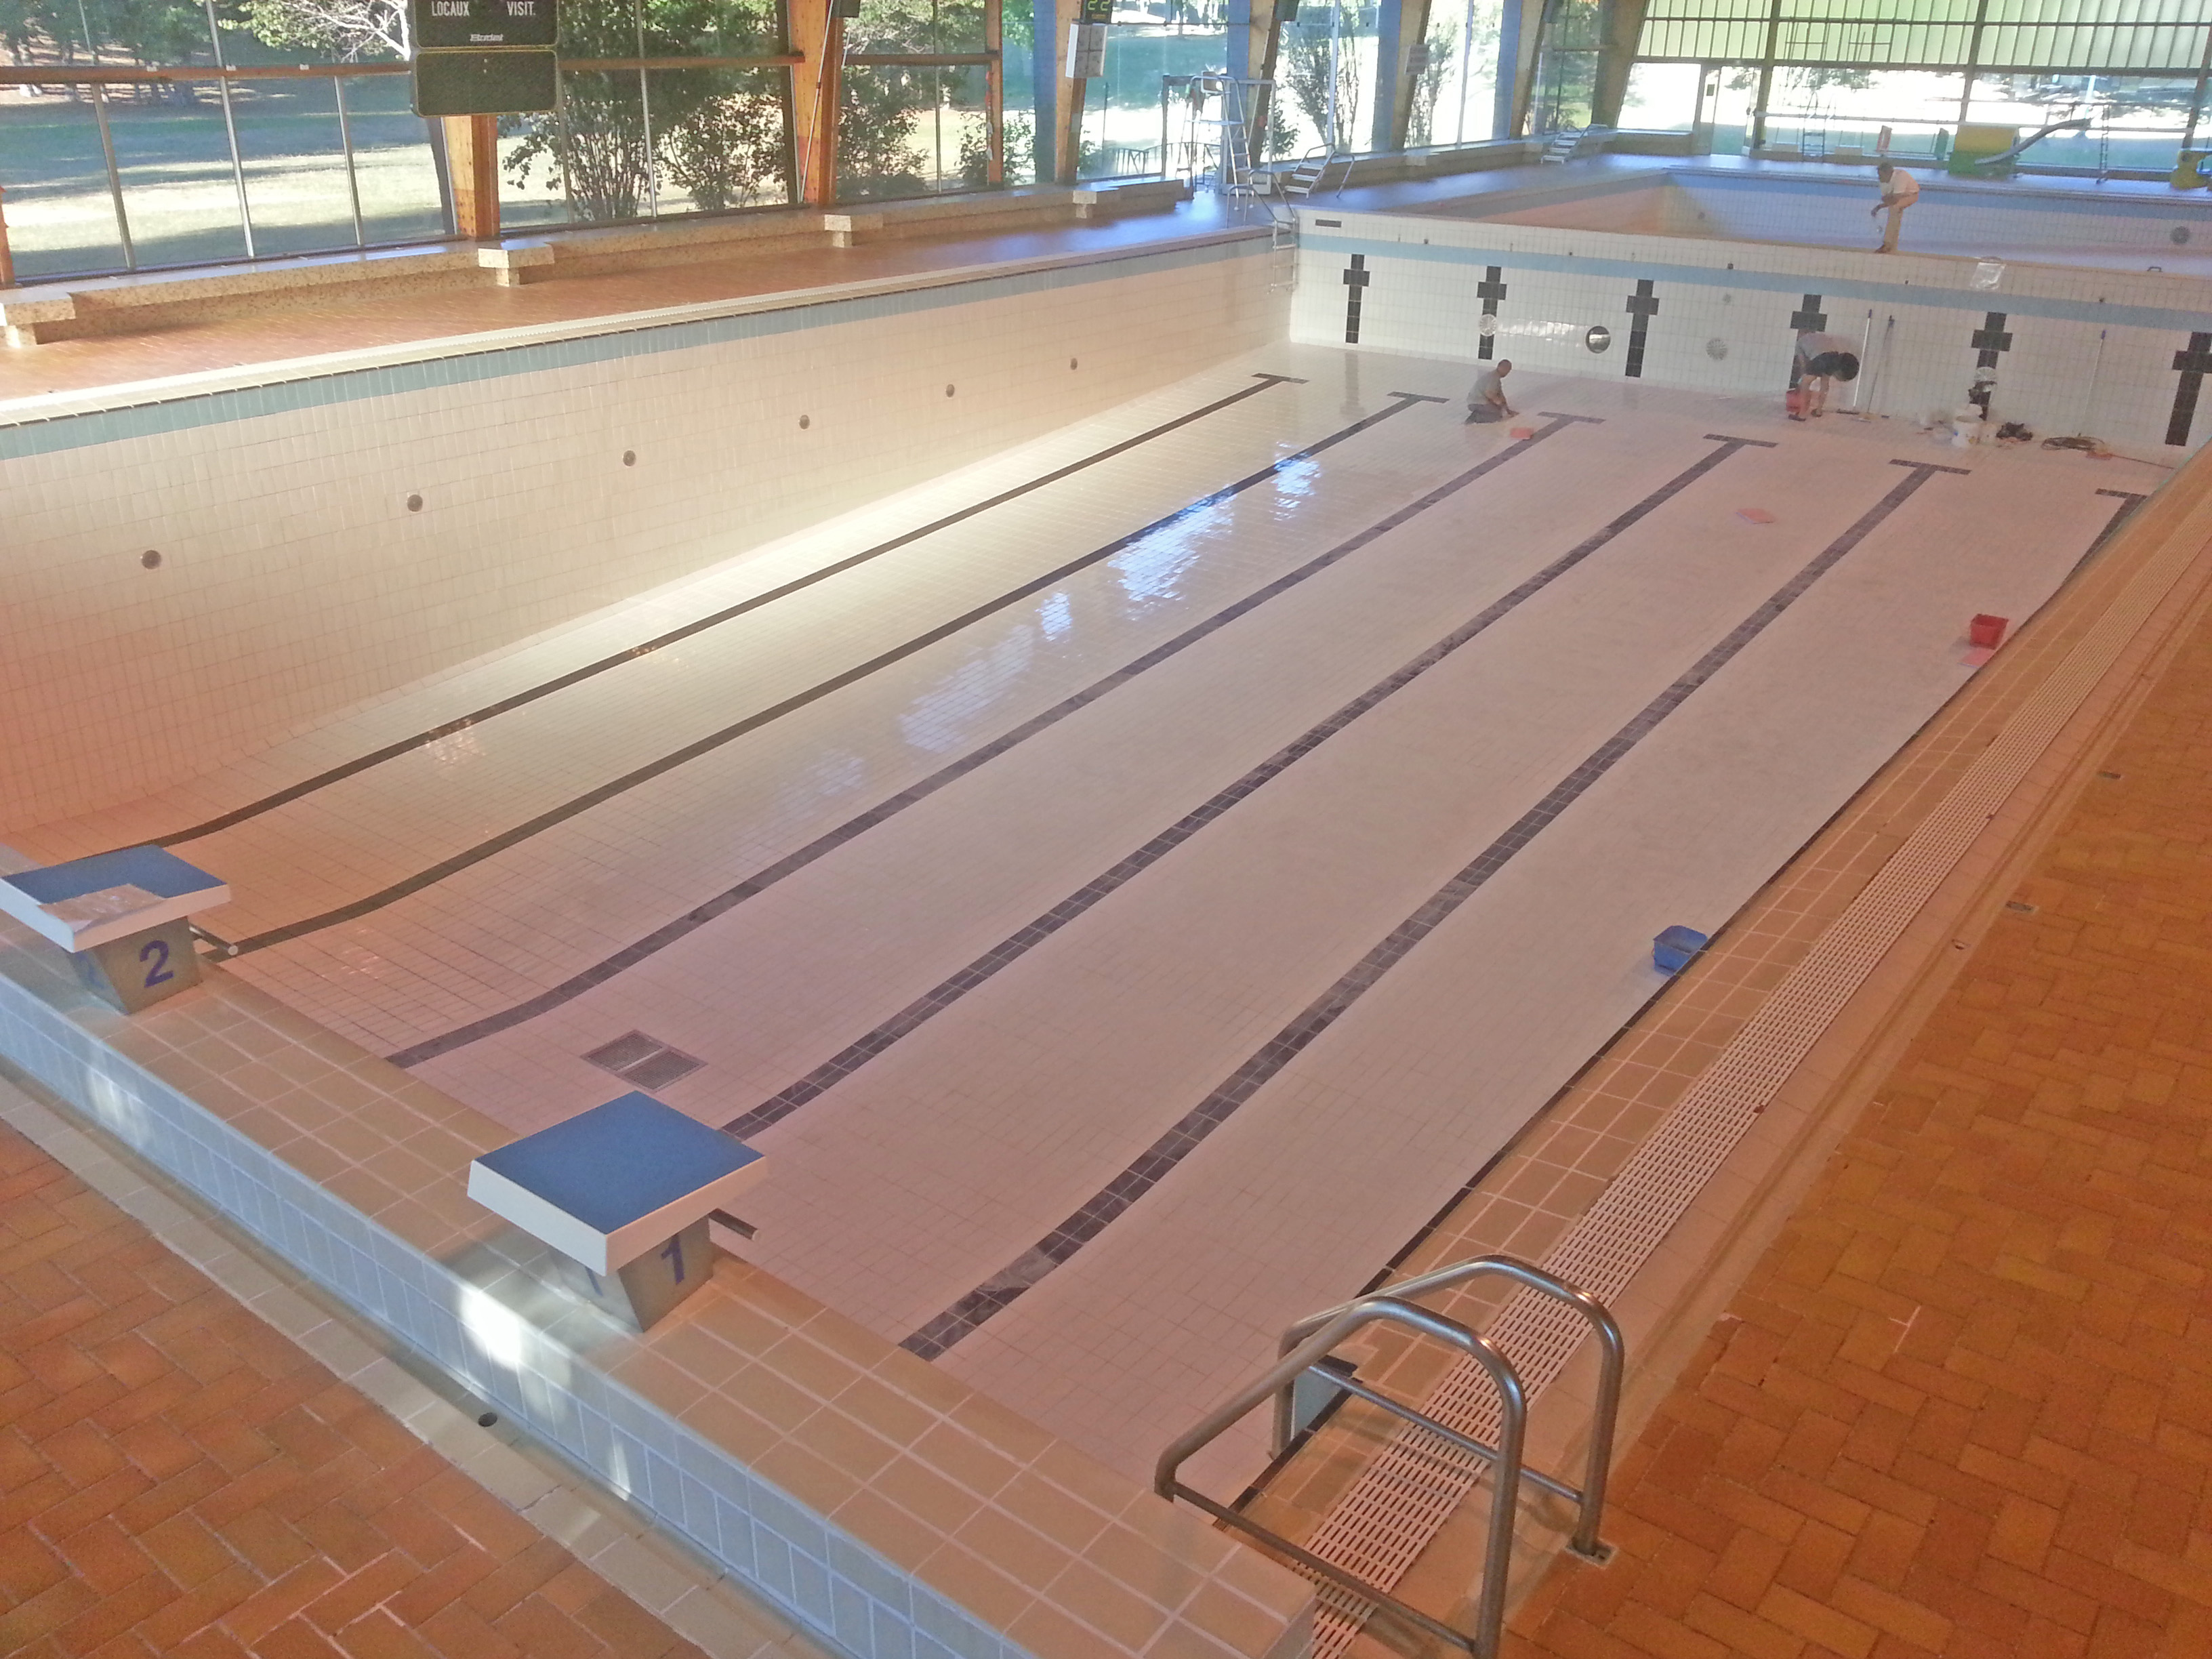 Horaire piscine saint lo id es de for Piscine golbey horaires